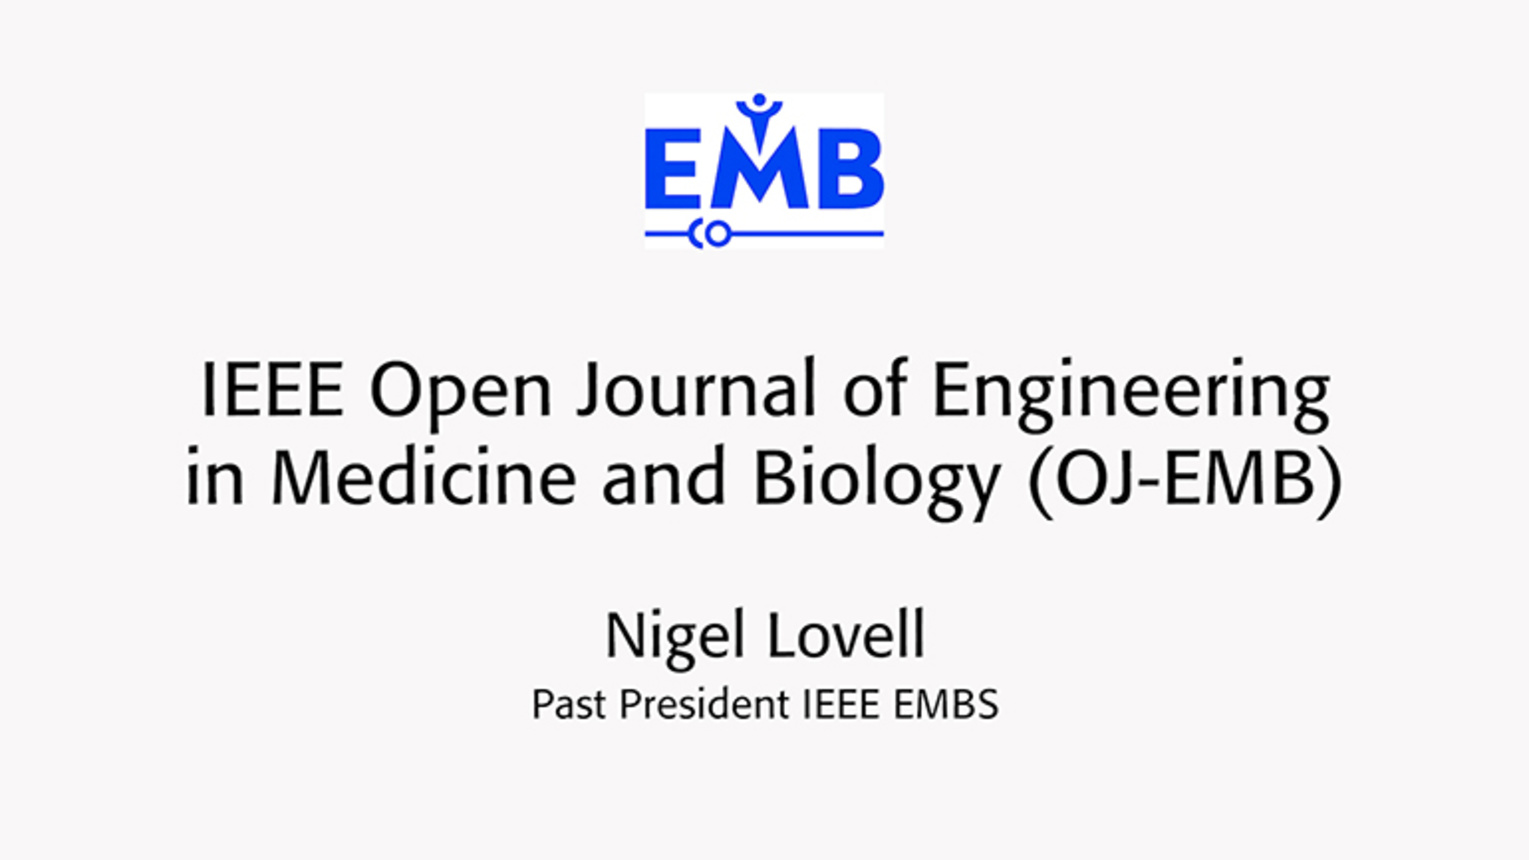 OJ-EMB: Rapid, quality publication - Nigel Lovell